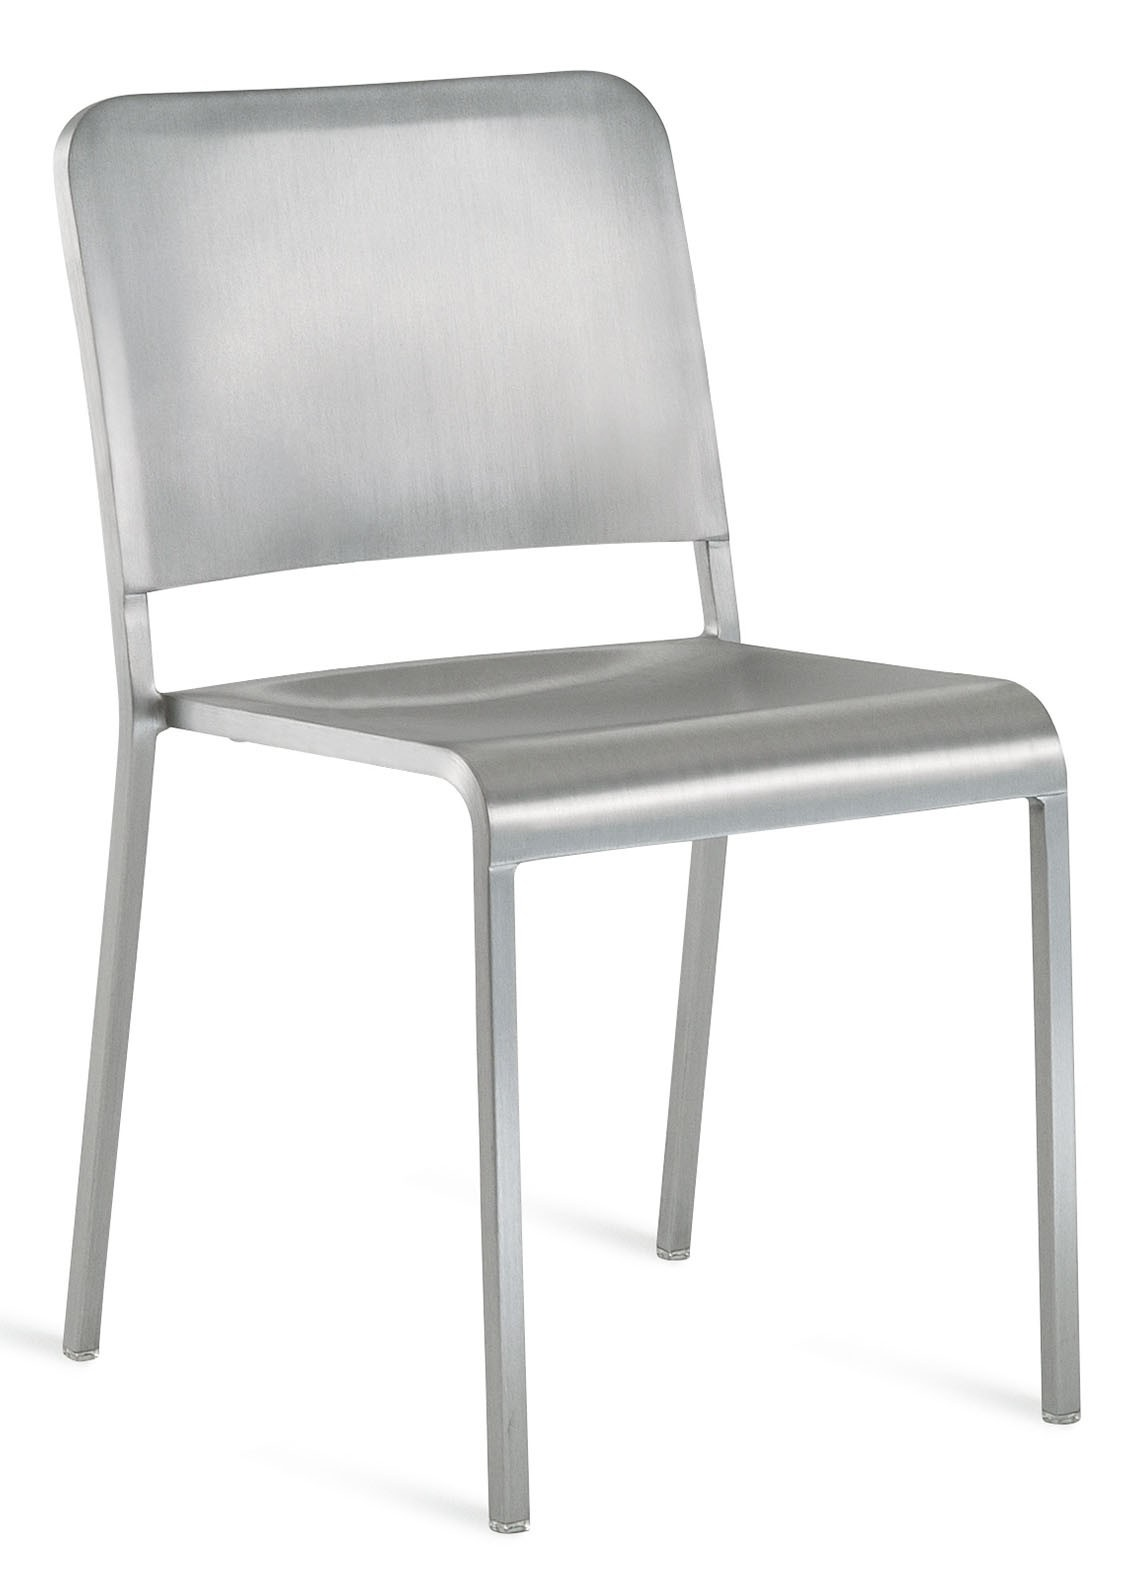 Emeco 20-06 Stacking Chair